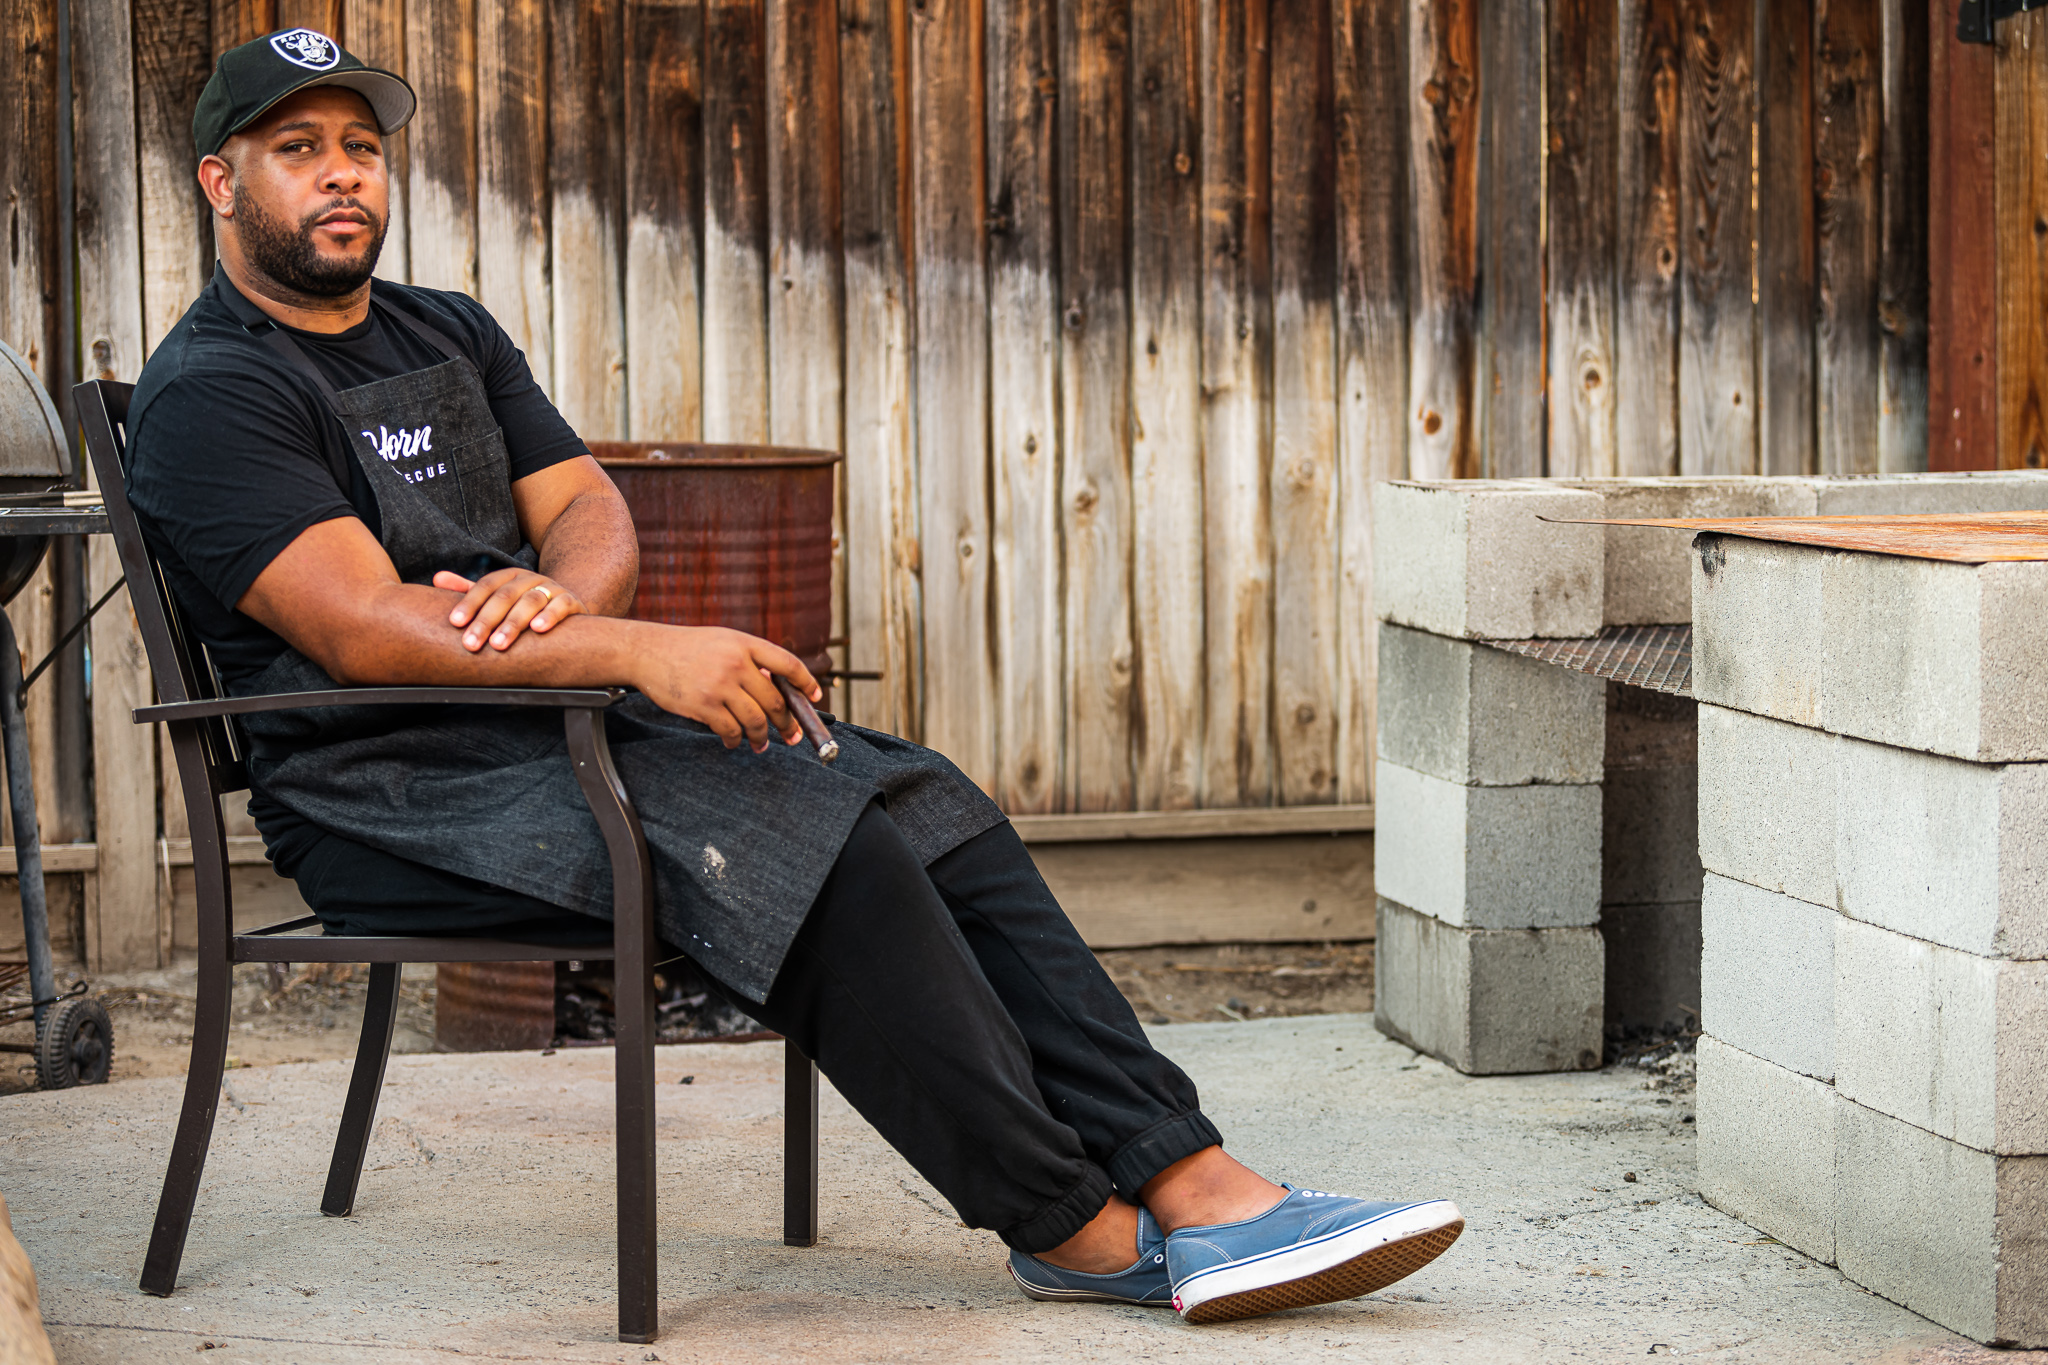 San Francisco, Oakland chefs honored in Food & Wine's Best New Chefs list thumbnail